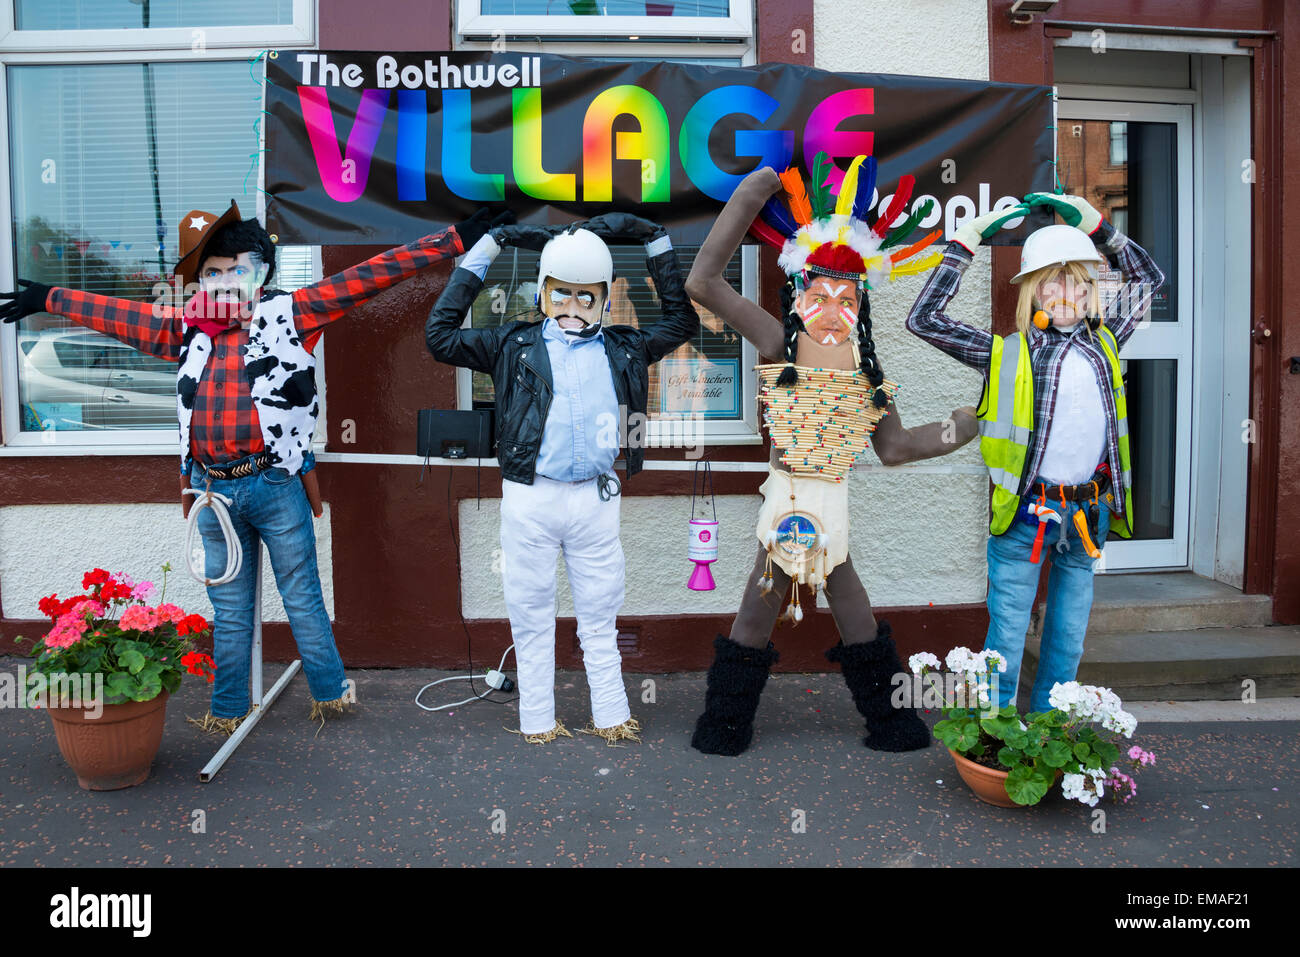 Scarecrows at scarecrow festival. - Stock Image